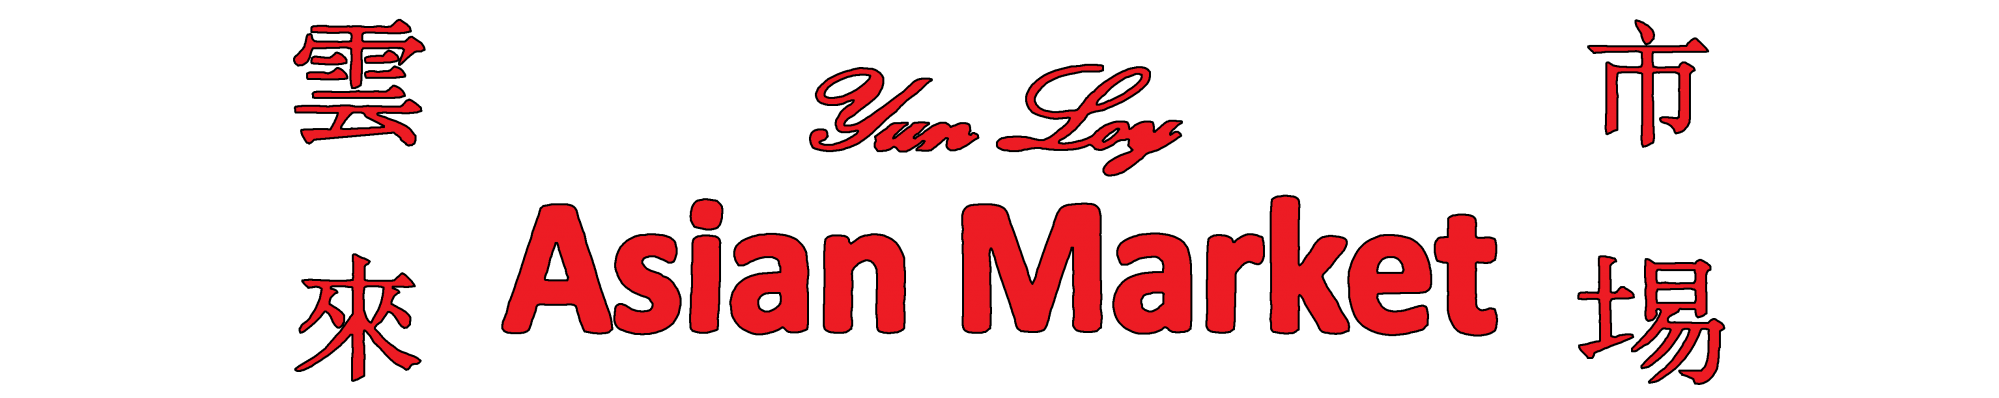 Yun Loy Asian Market